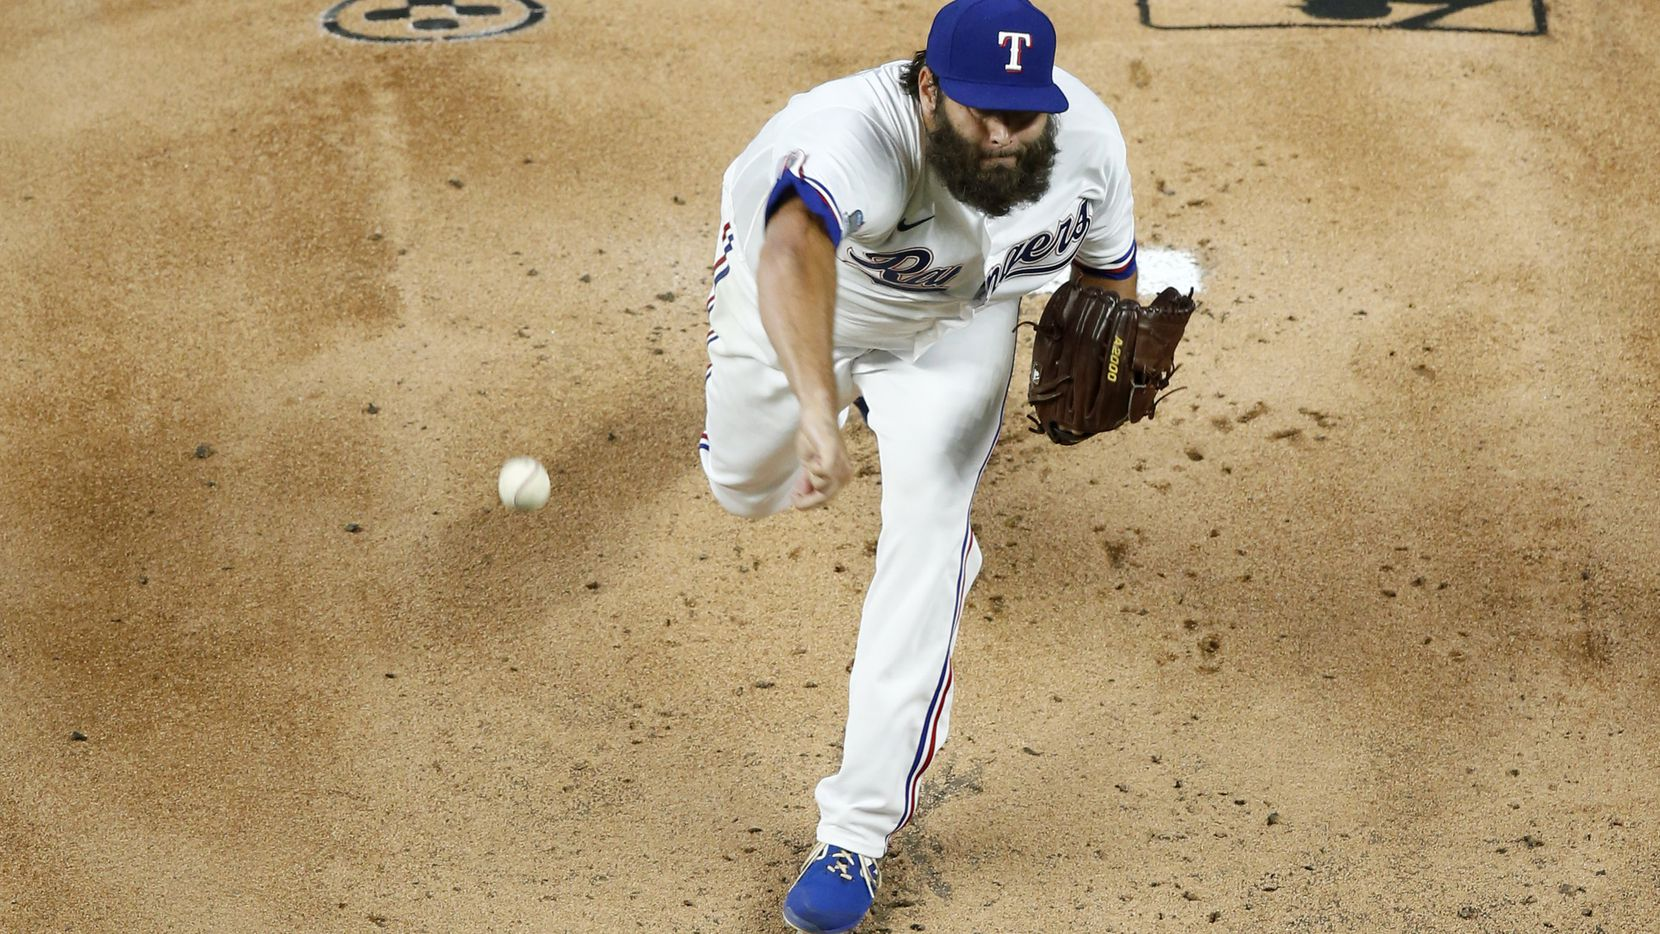 Texas Rangers starting pitcher Lance Lynn (35) pitches during the first inning agains the Colorado Rockies on opening day at Globe Life Field in Arlington, Texas on Friday, July 24, 2020. (Vernon Bryant/The Dallas Morning News)